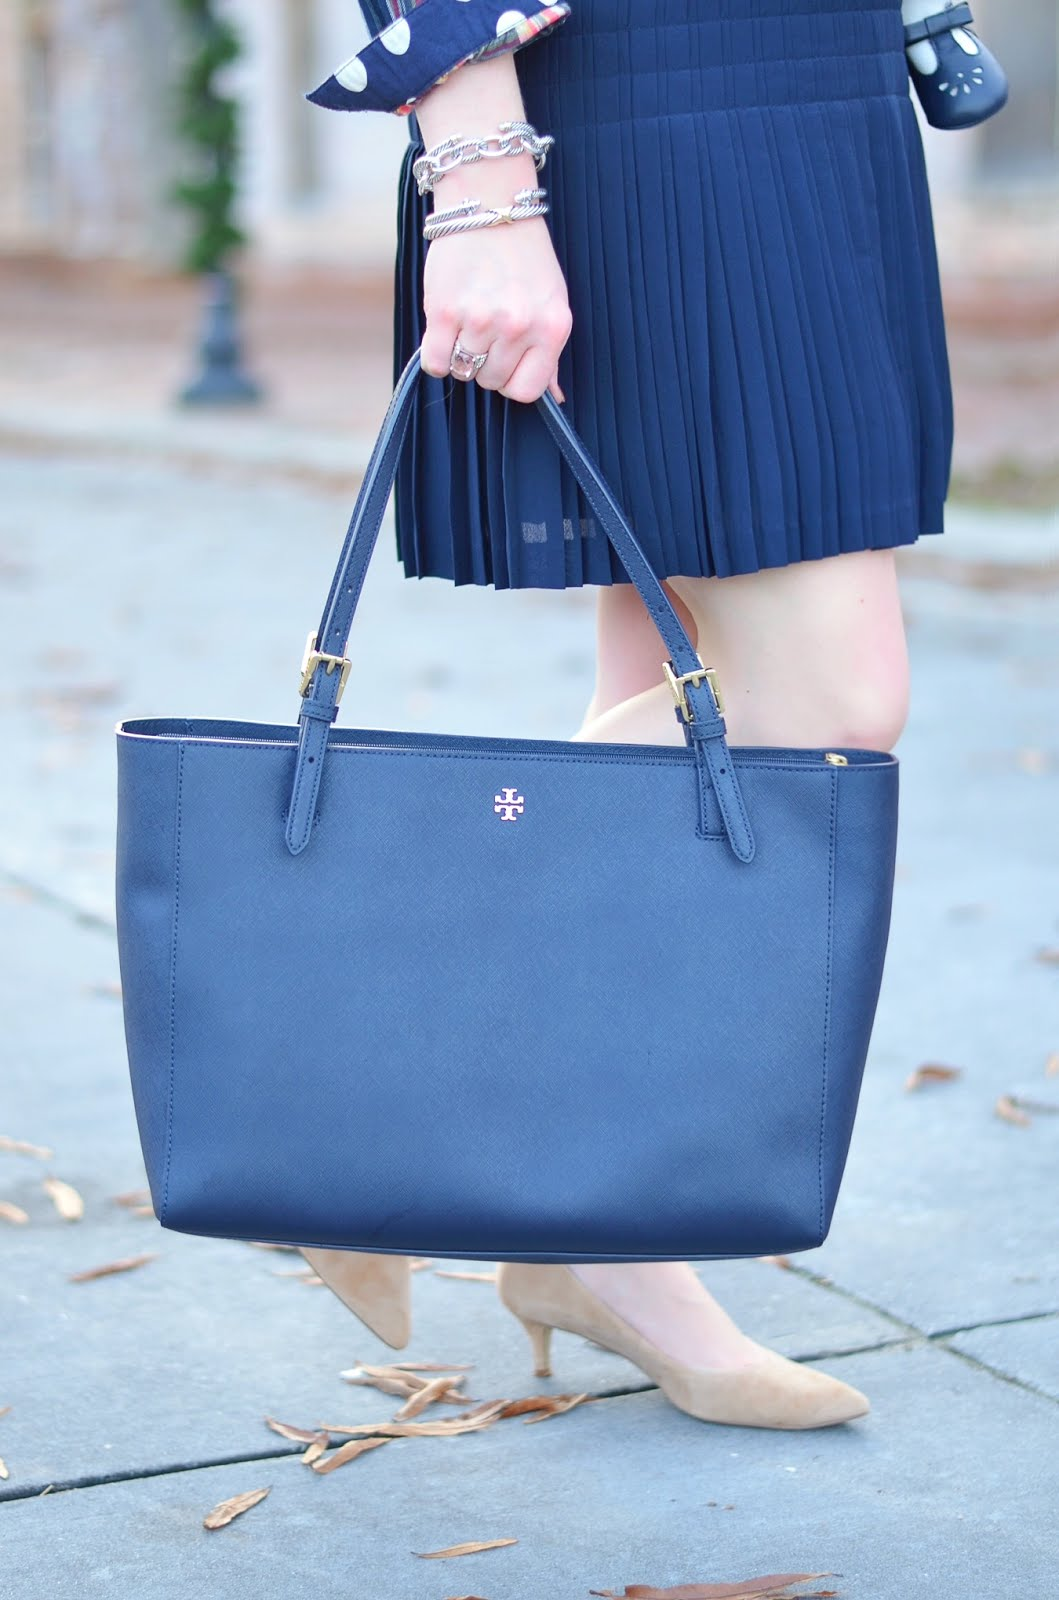 Tory Burch York Tote